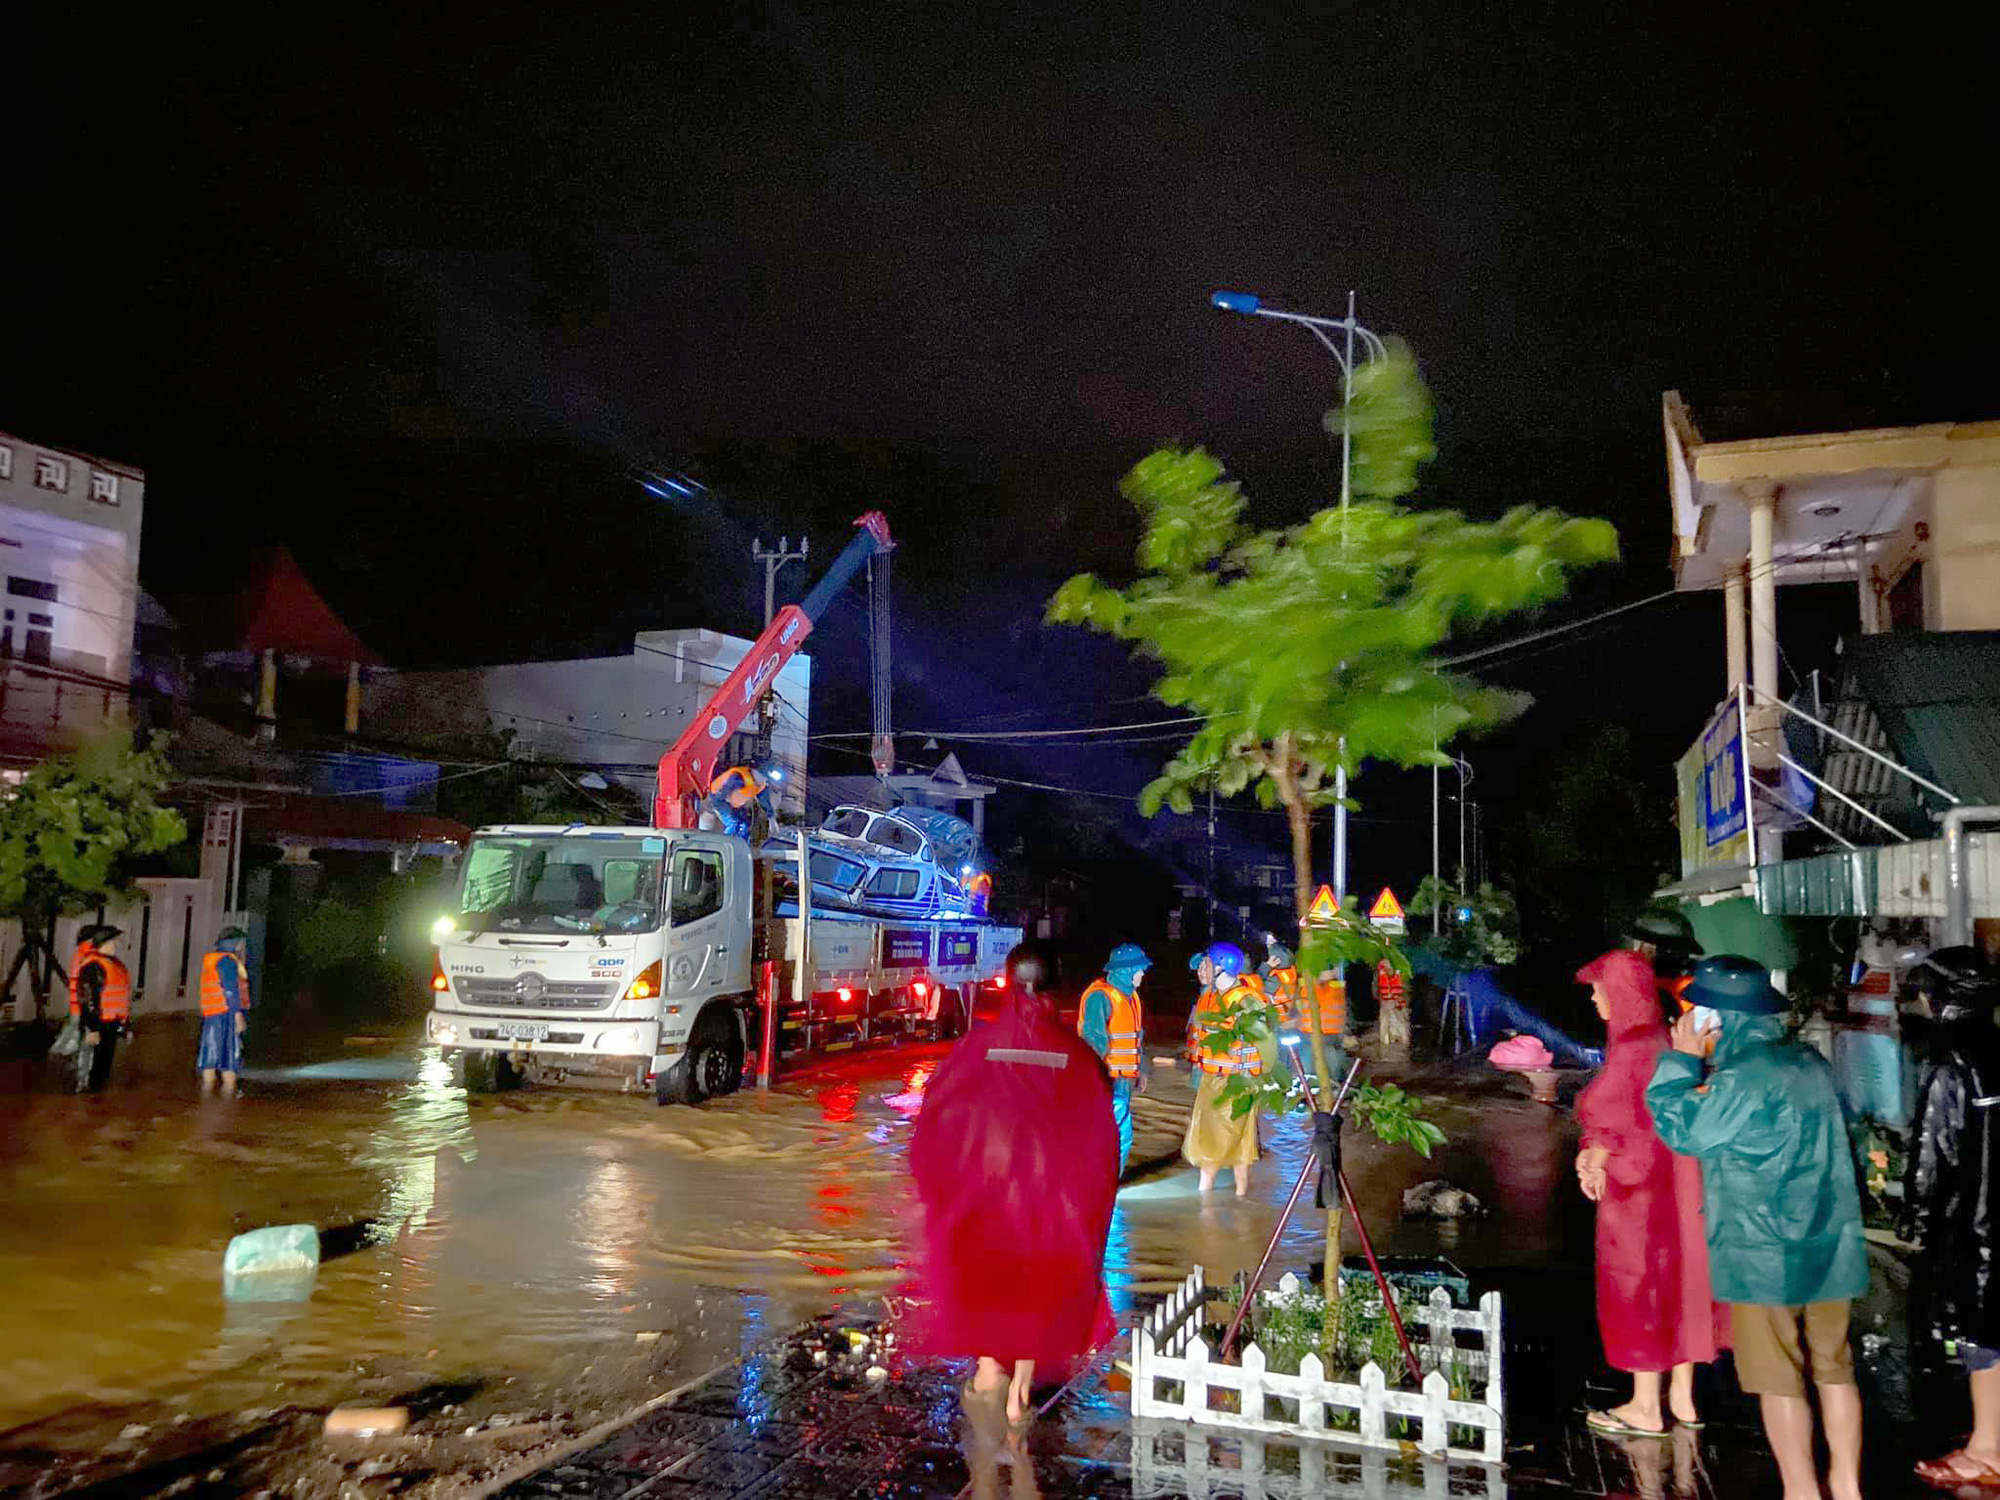 Residents seek help on Facebook as floods submerge houses in central Vietnamese province